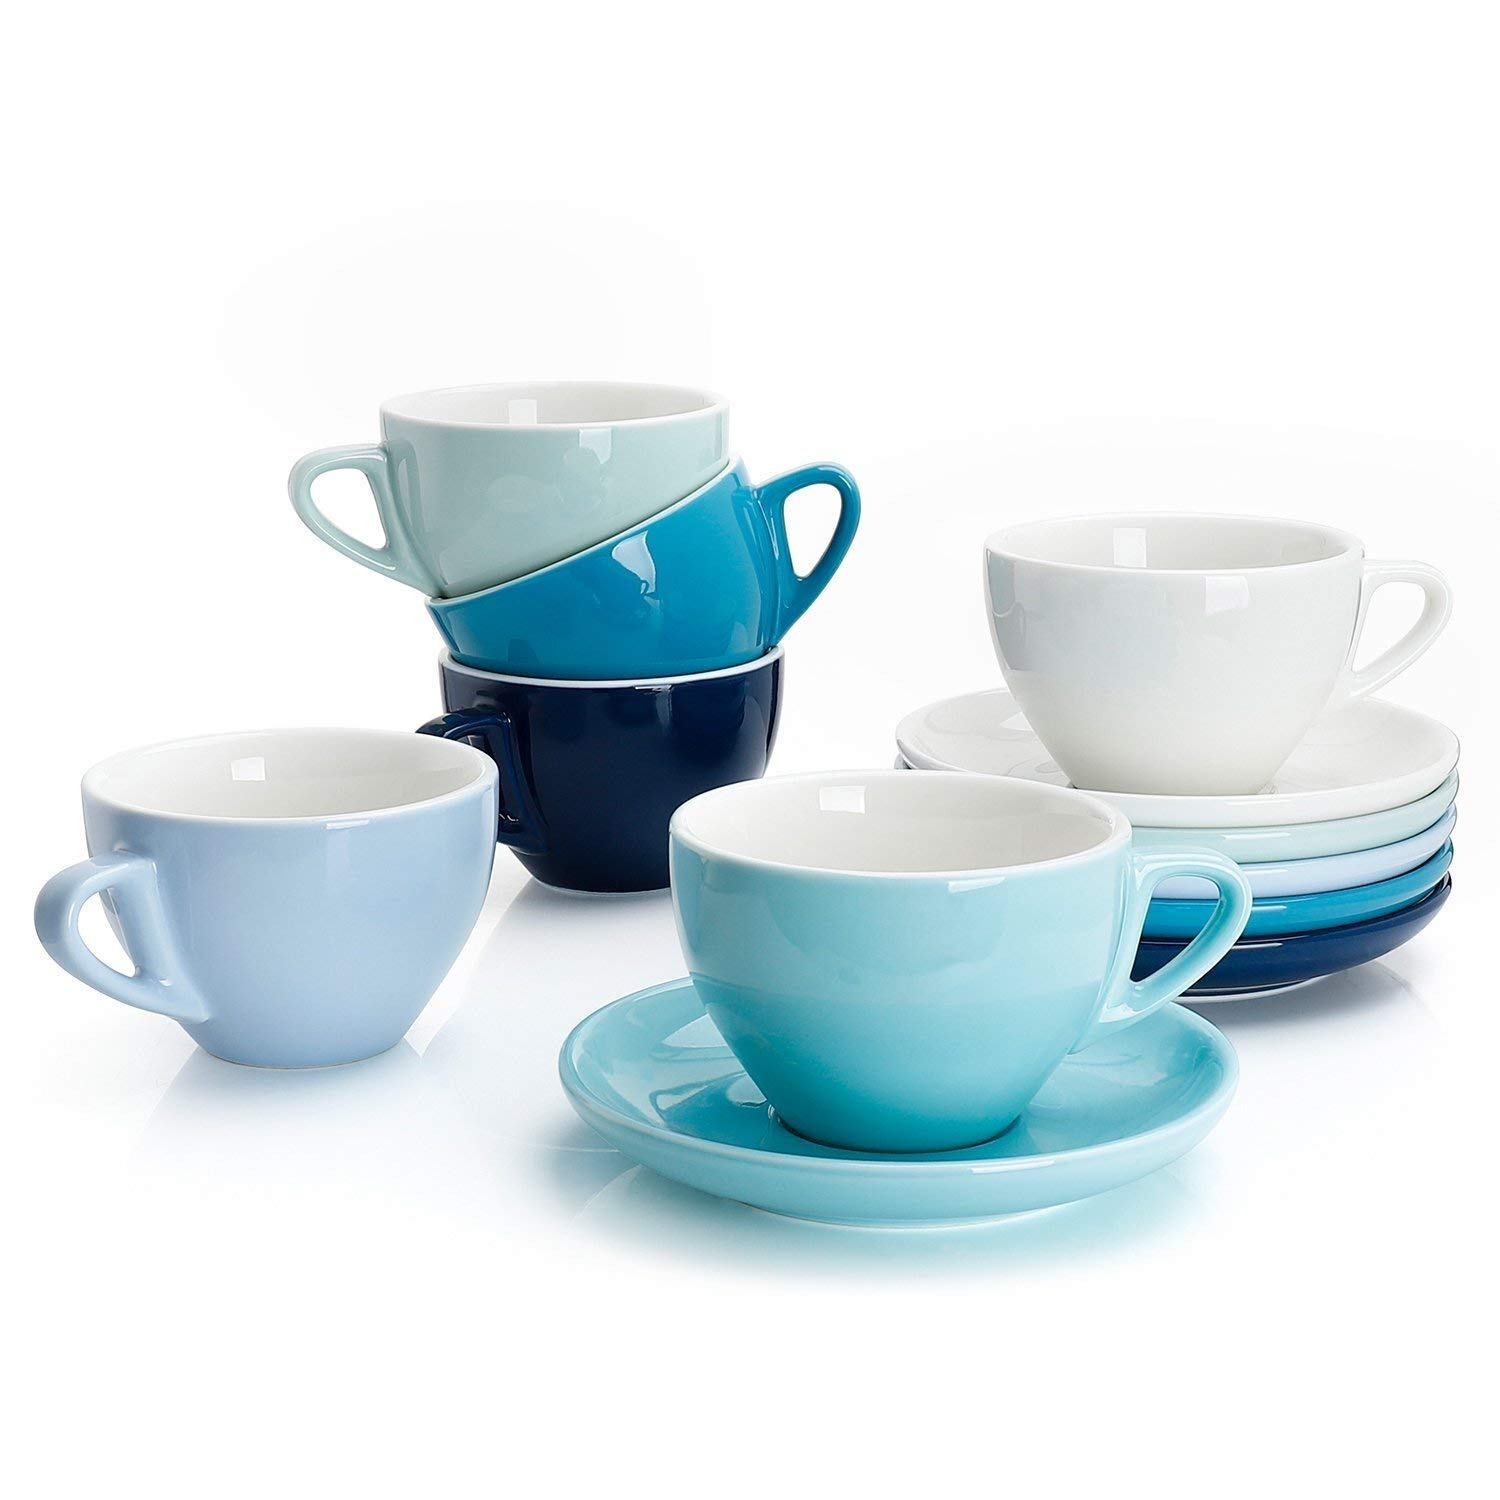 Sweese 4309 Porcelain Cappuccino Cups with Saucers - 6 Ounce for Specialty Coffee Drinks, Latte, Cafe Mocha and Tea - Set of 6, Cold Assorted colors